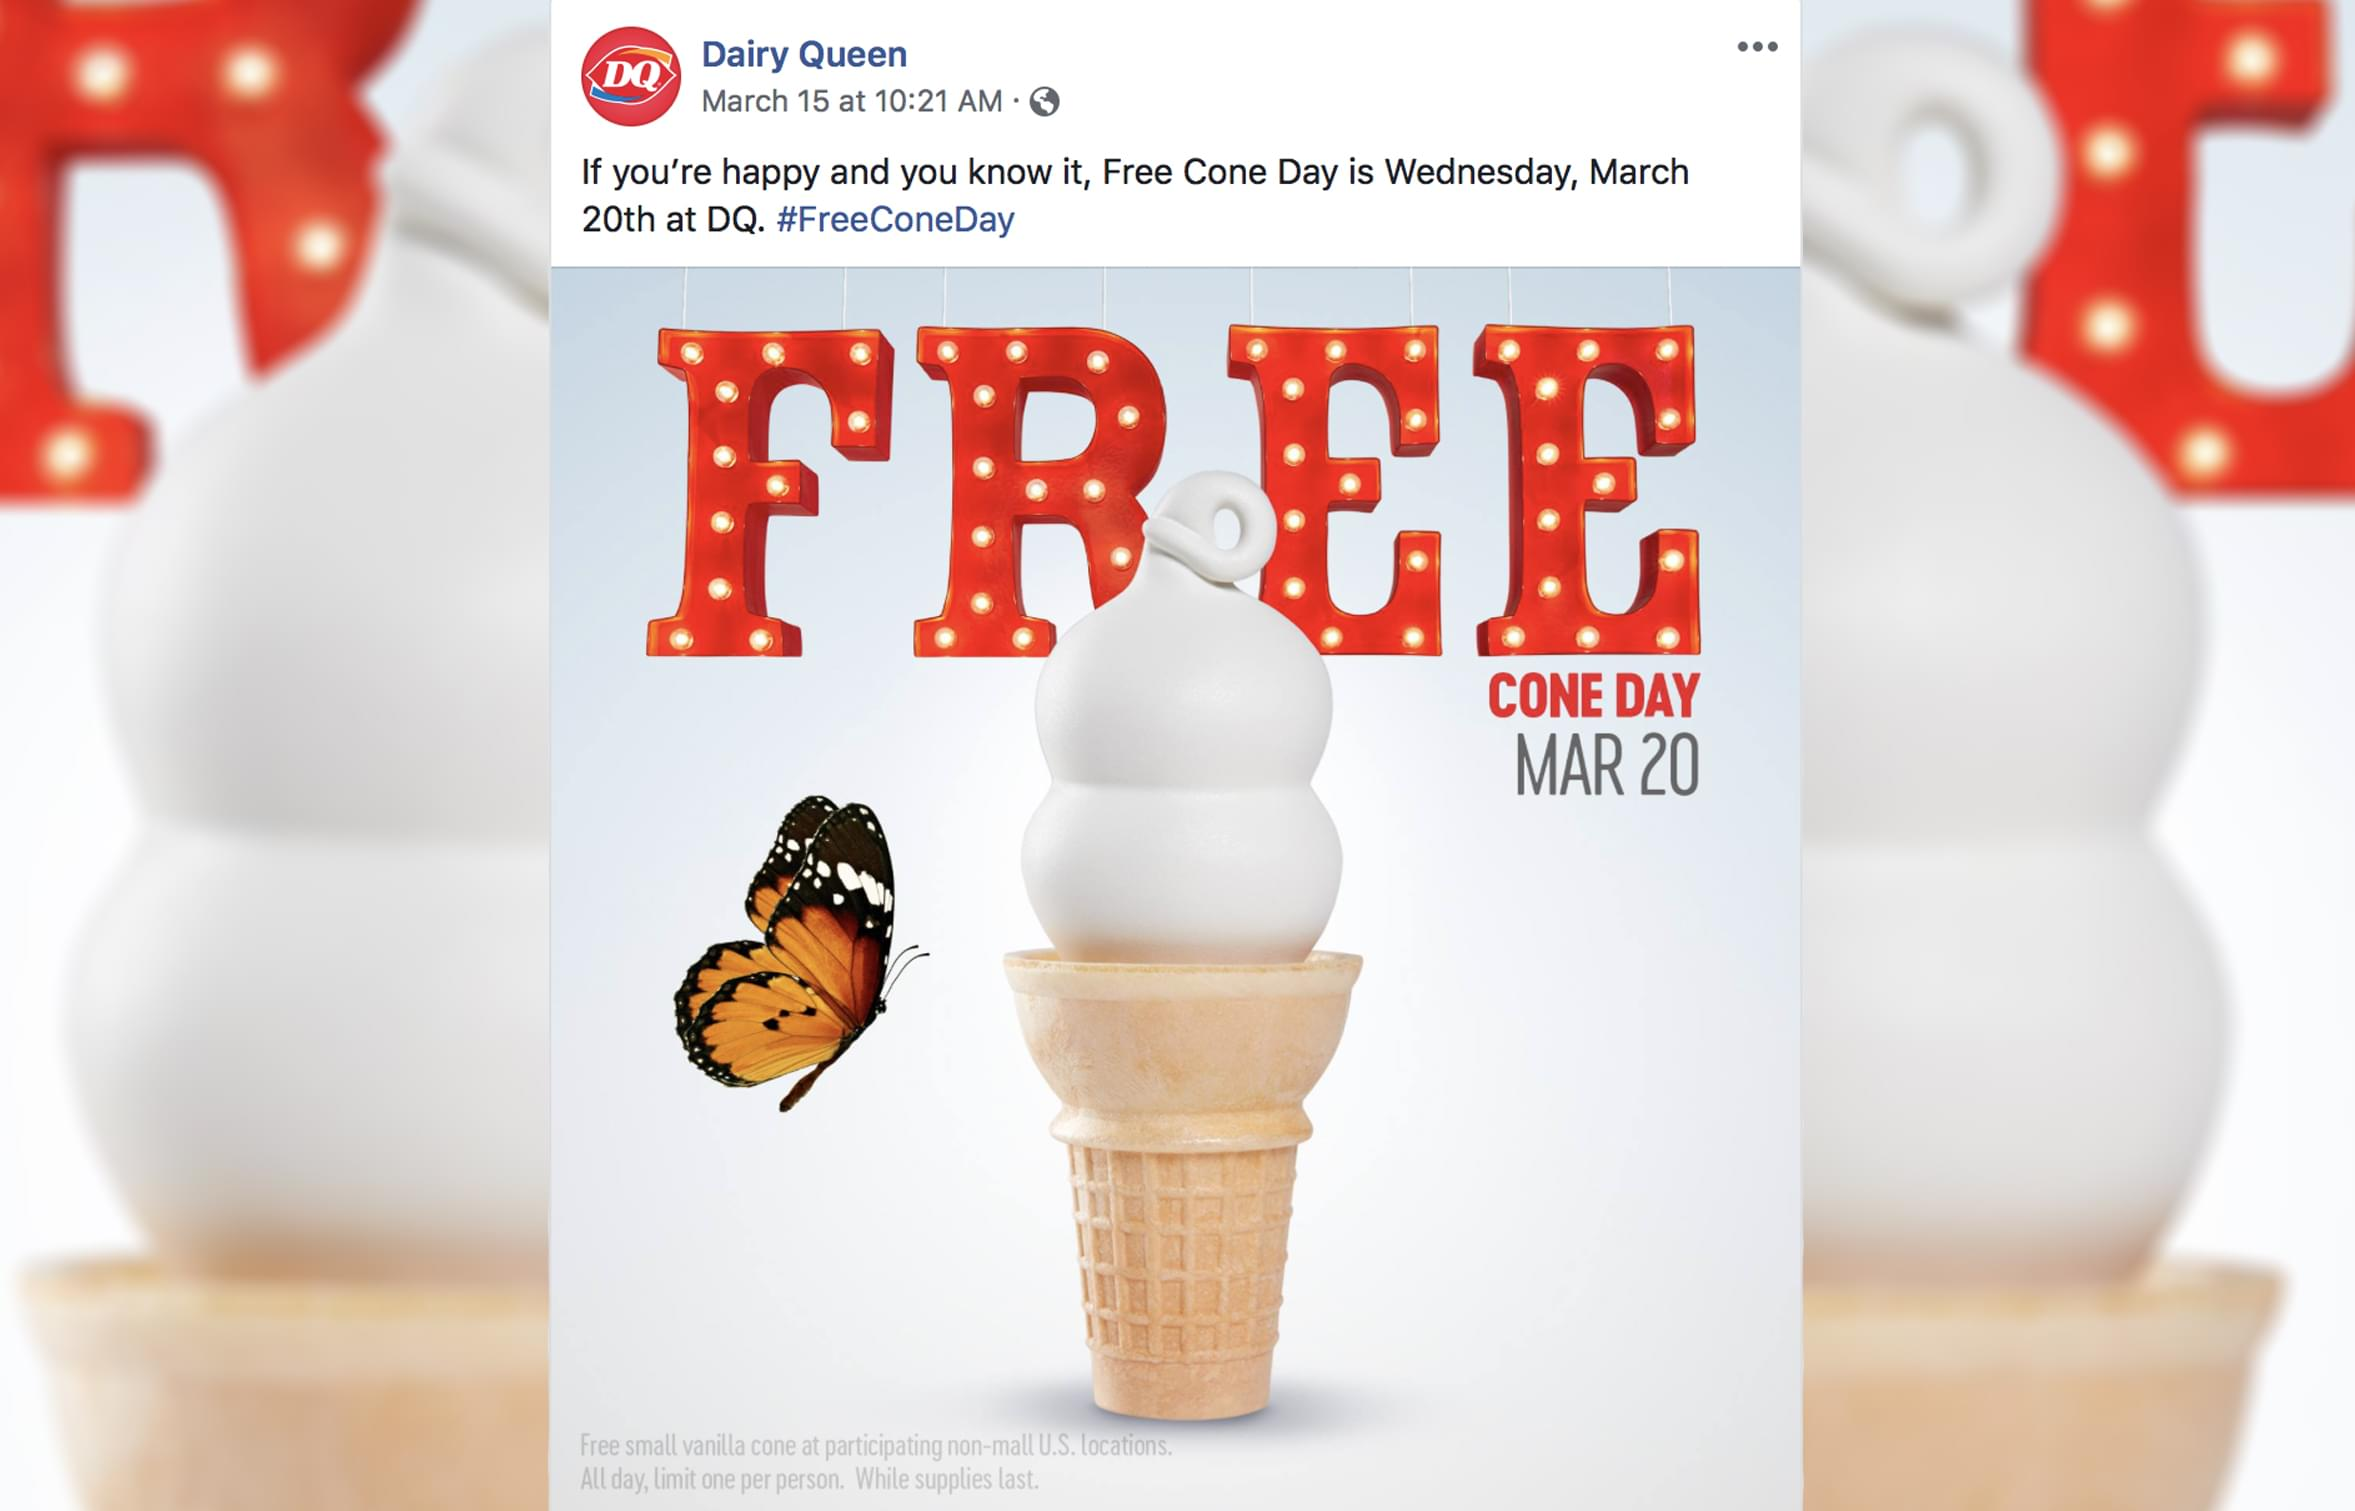 Dairy Queen will be giving away free cones on Wednesday (March 20th)